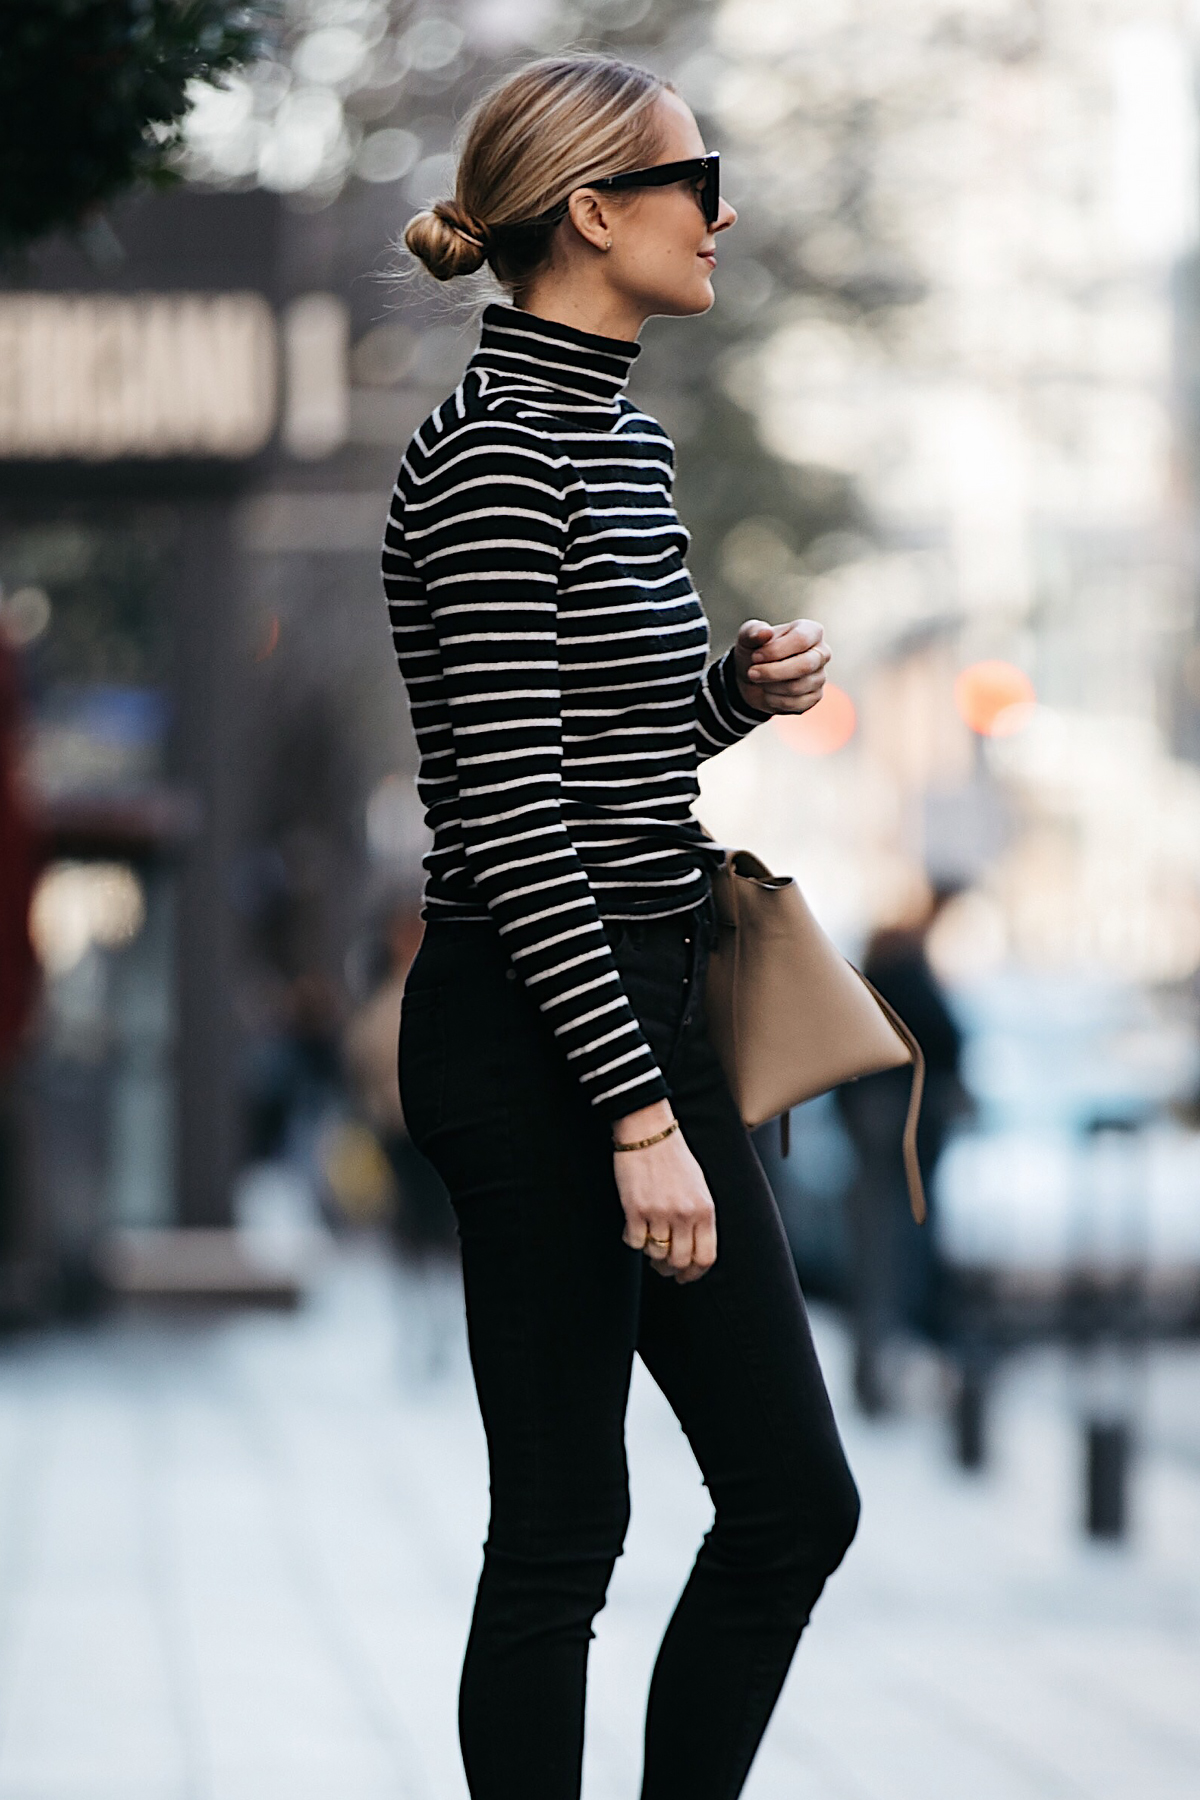 Blonde Woman Wearing Nordstrom Black White Striped Turtleneck Sweater Black Skinny Jeans Outfit Fashion Jackson Dallas Blogger Fashion Blogger Street Style